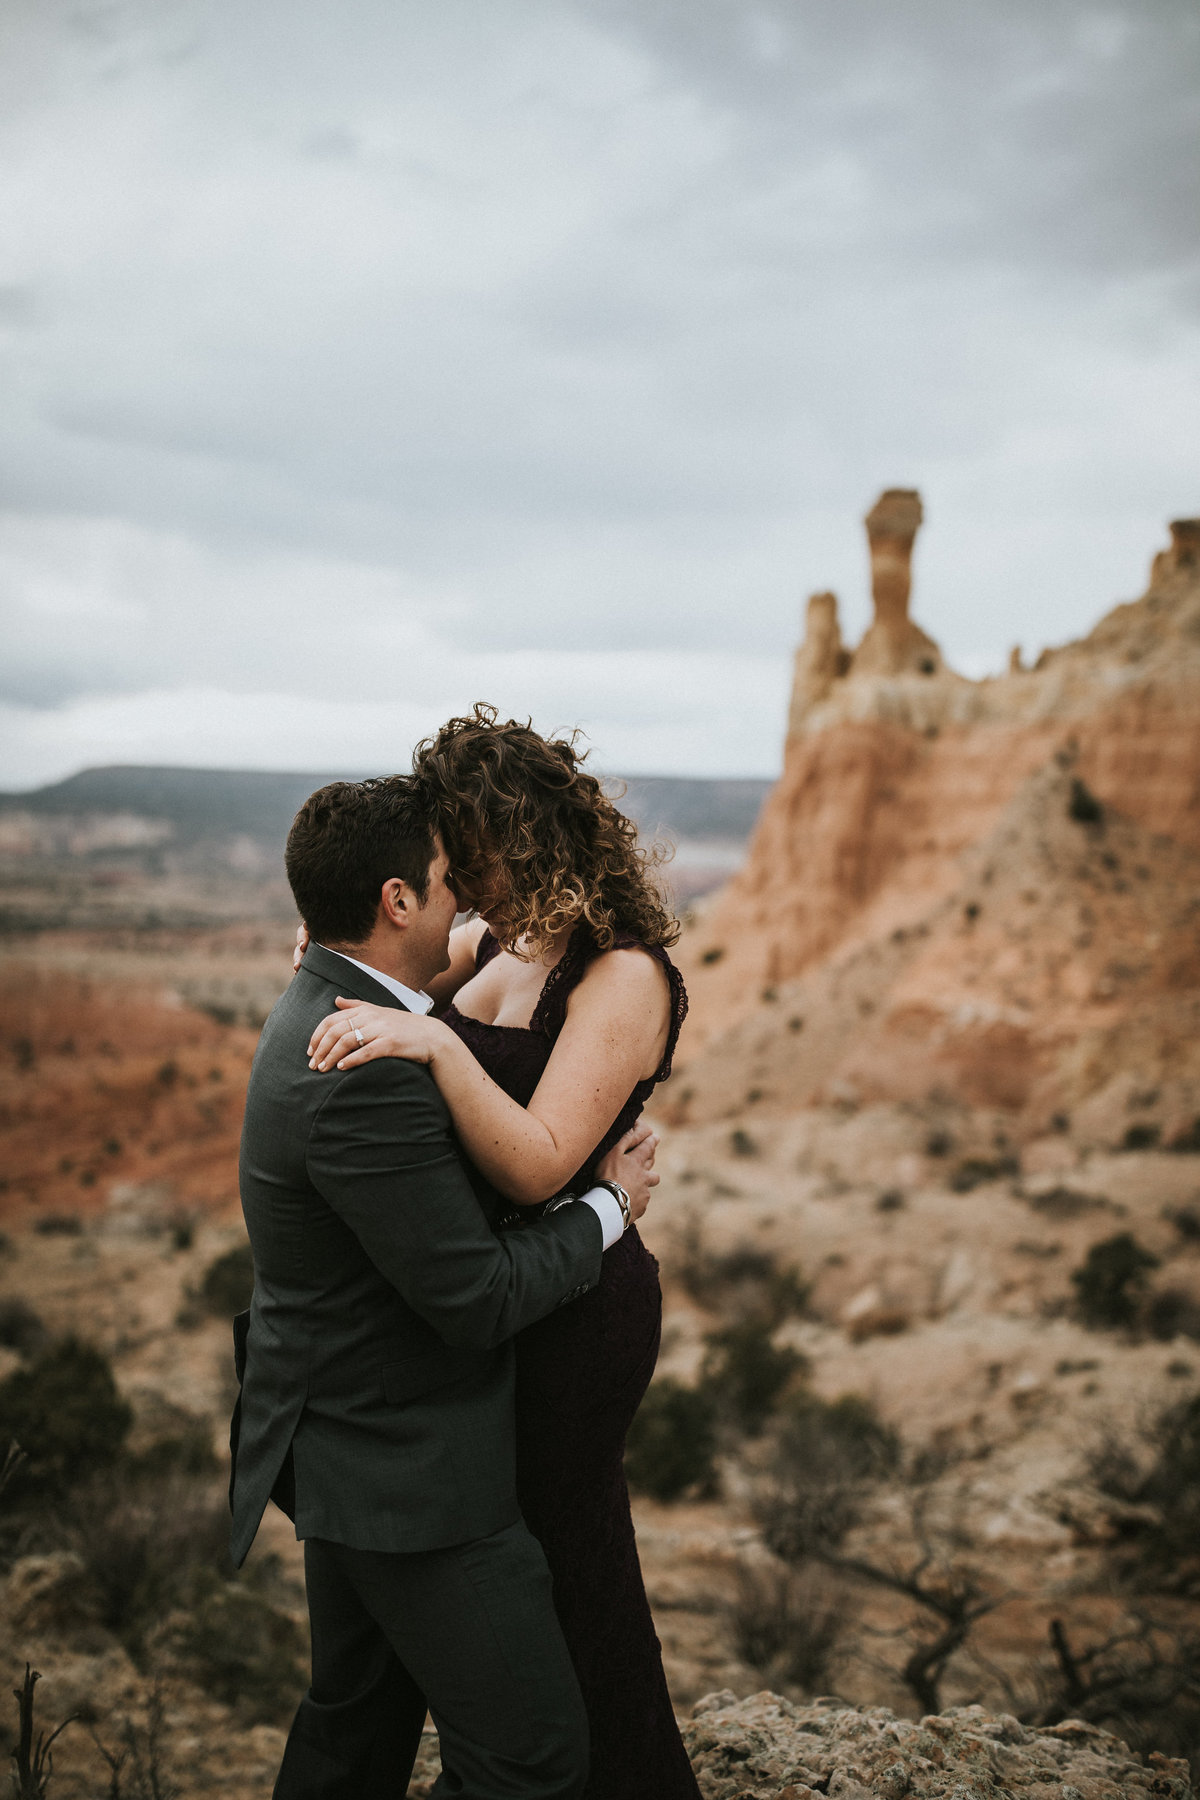 new-mexico-destination-engagement-wedding-photography-videography-adventure-437